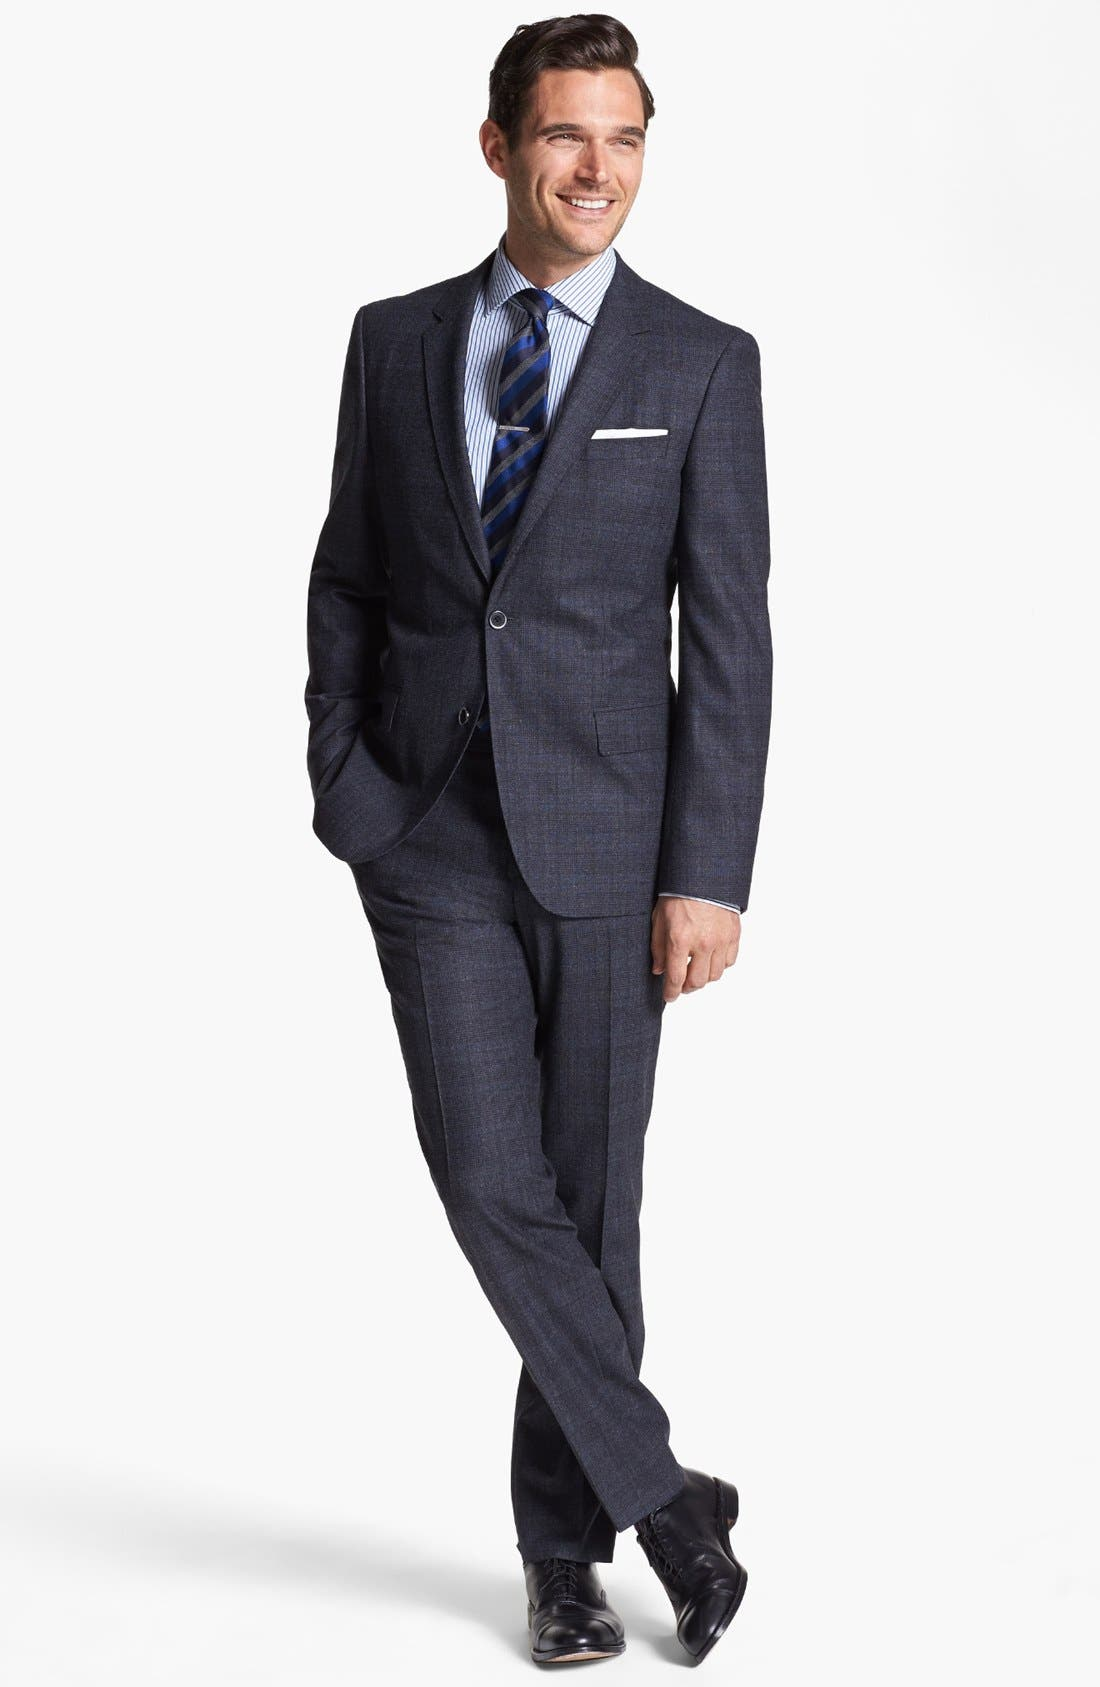 Main Image - BOSS HUGO BOSS 'Hedge/Gense' Trim Fit Plaid Suit